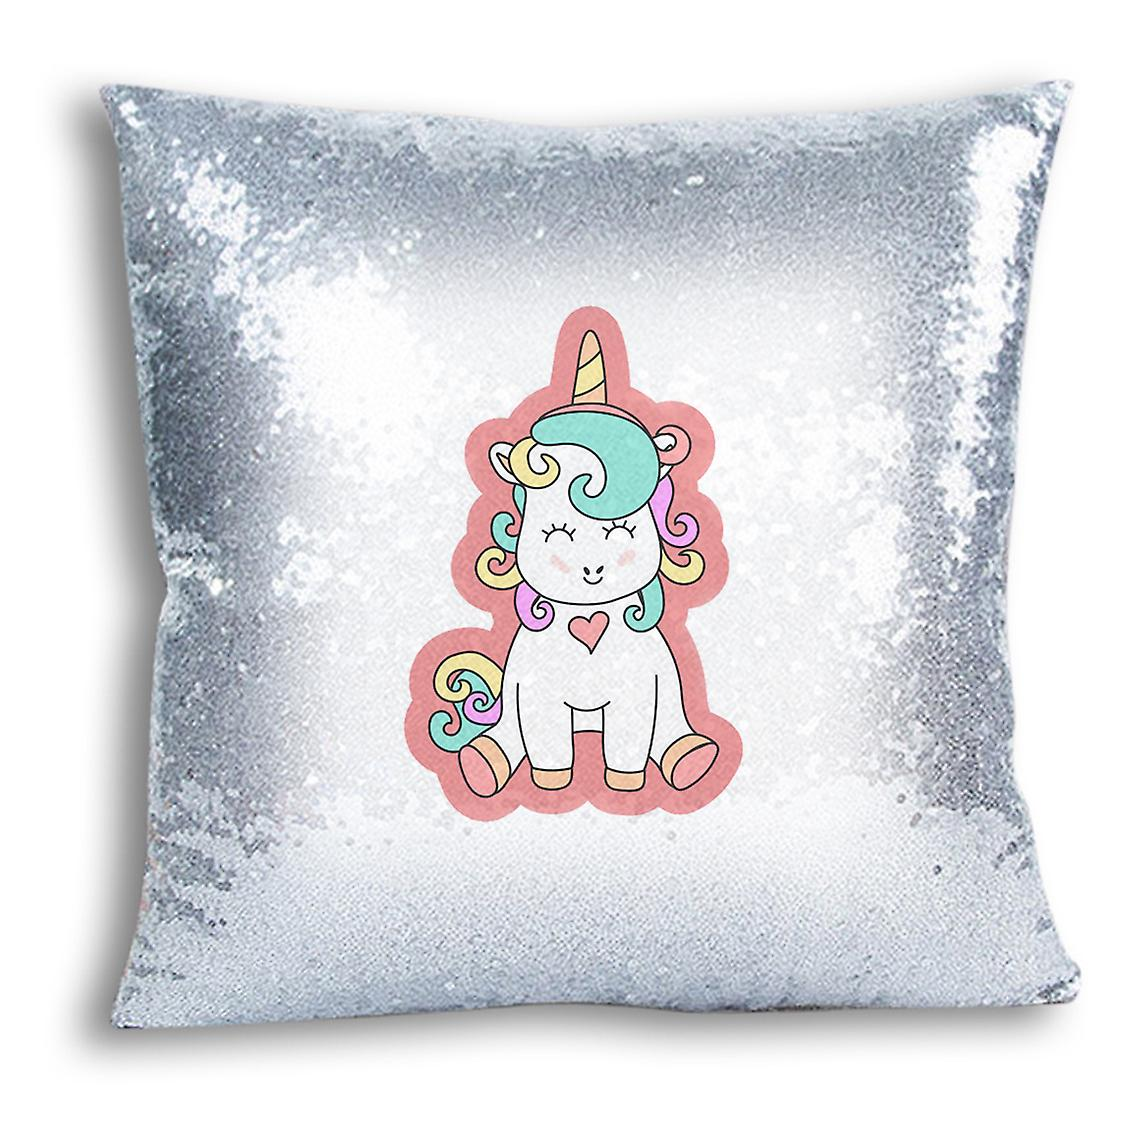 Design For I Cover With Printed Inserted tronixsUnicorn Silver Sequin CushionPillow 19 Decor Home qpSUzVM